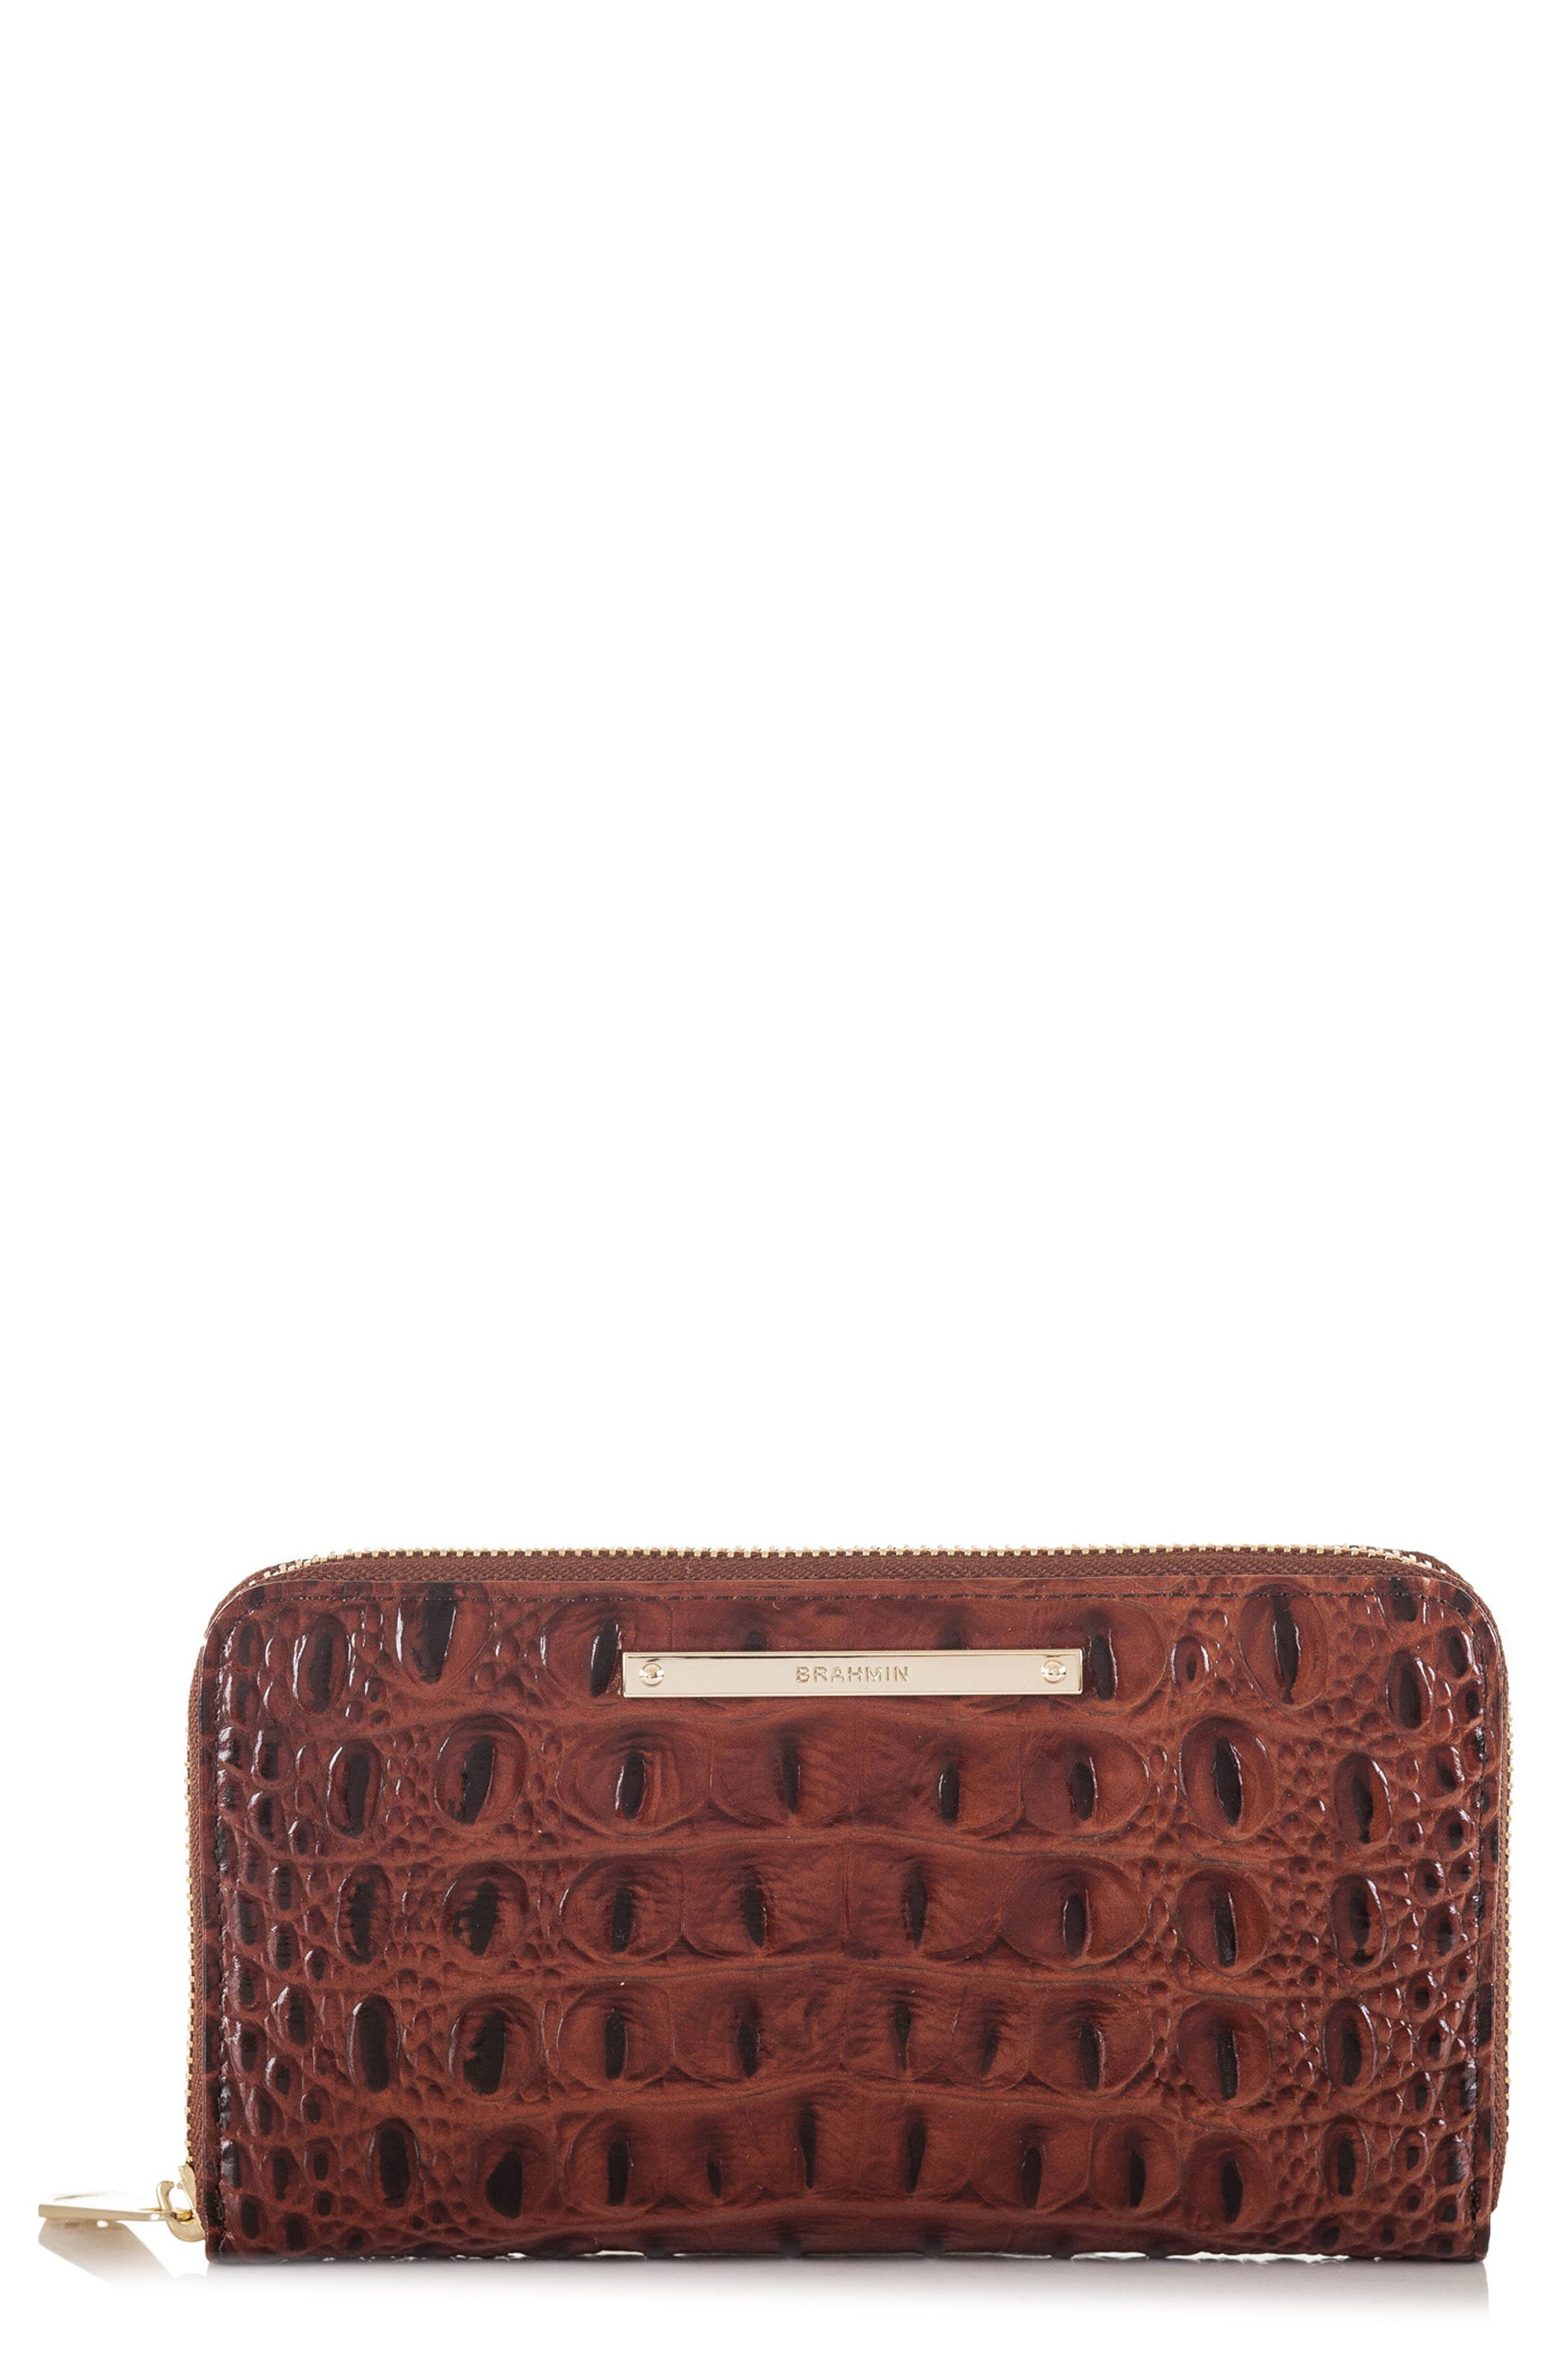 Alternate Image 1 Selected - Brahmin 'Suri' Zip Around Wallet